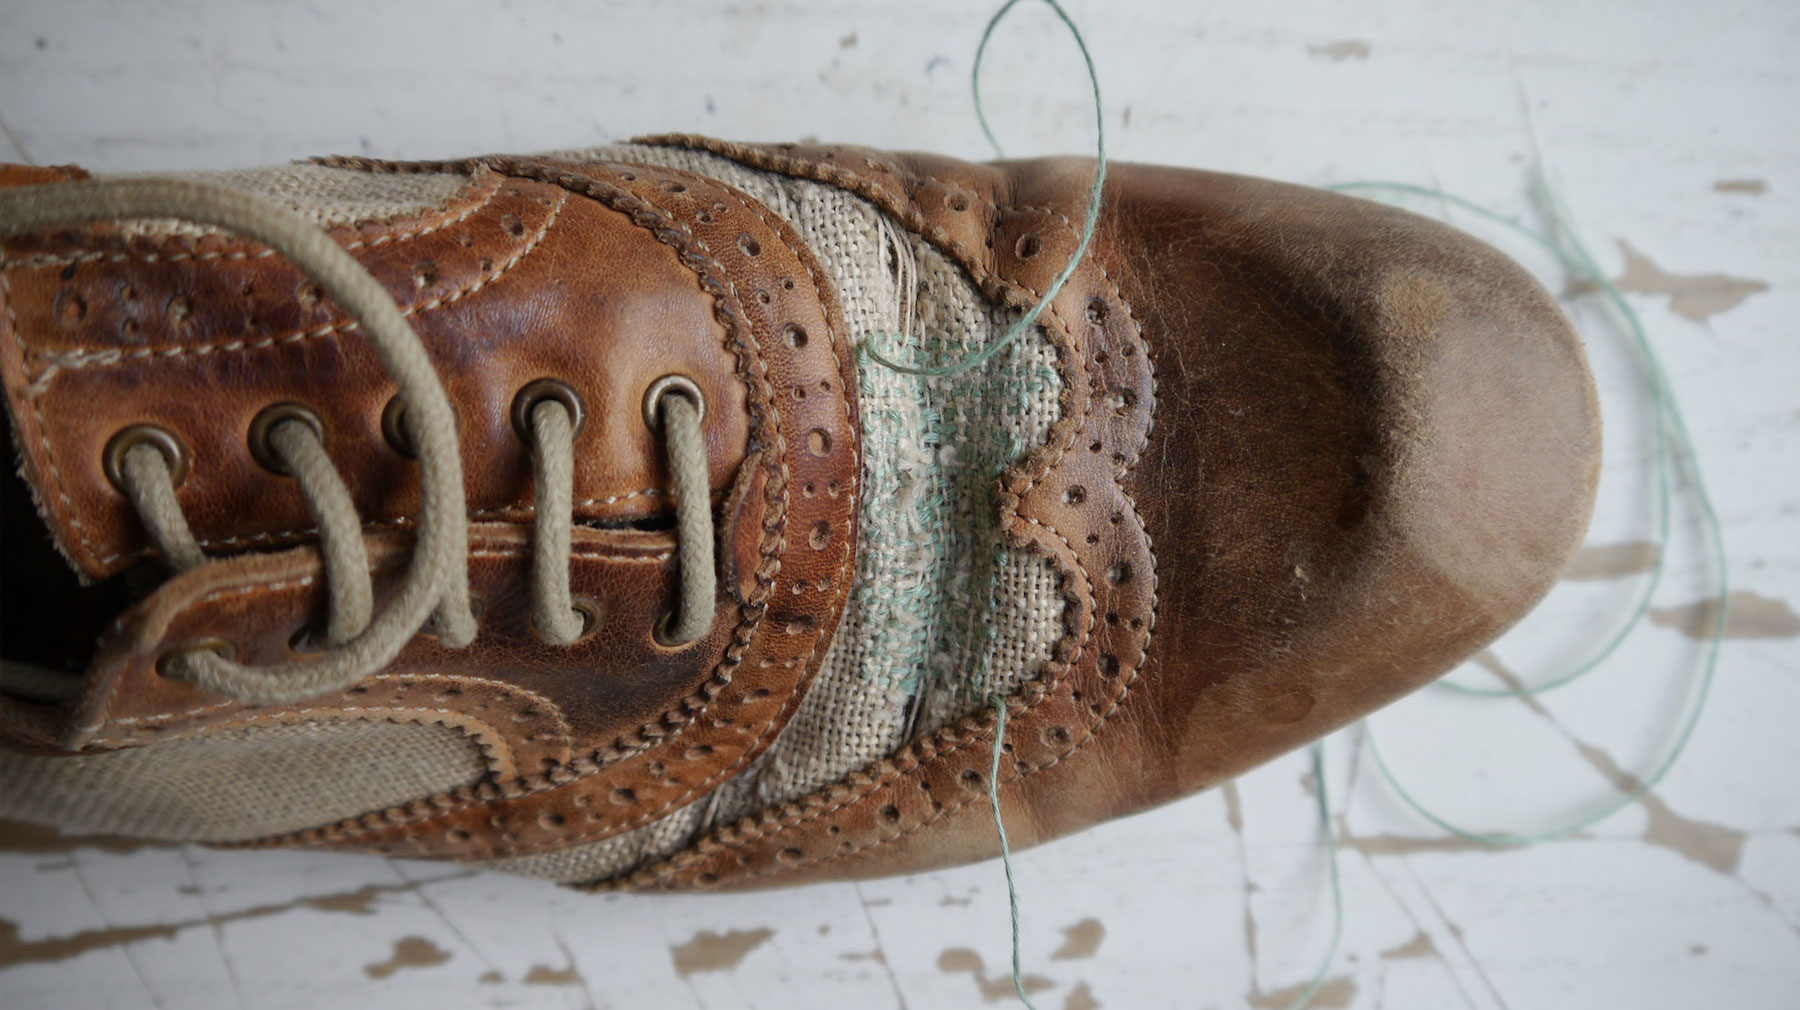 Repaired brogue shoe